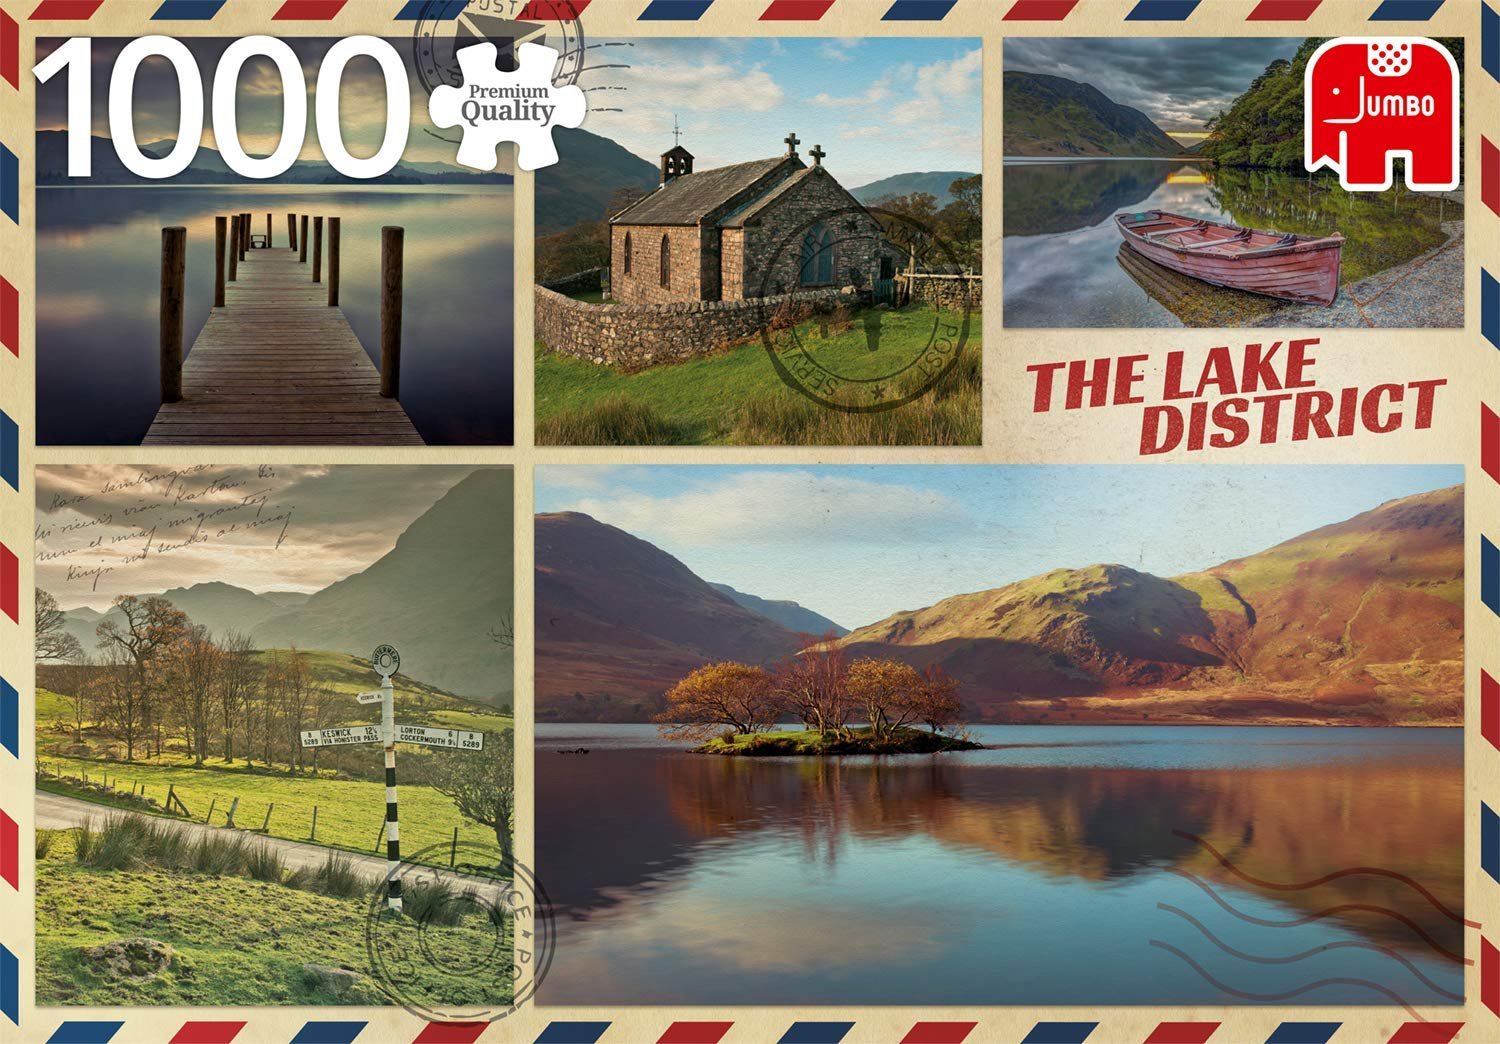 james-hamilton-greetings-from-the-lake-district-1000-teile-puzzle-jumbo-18840